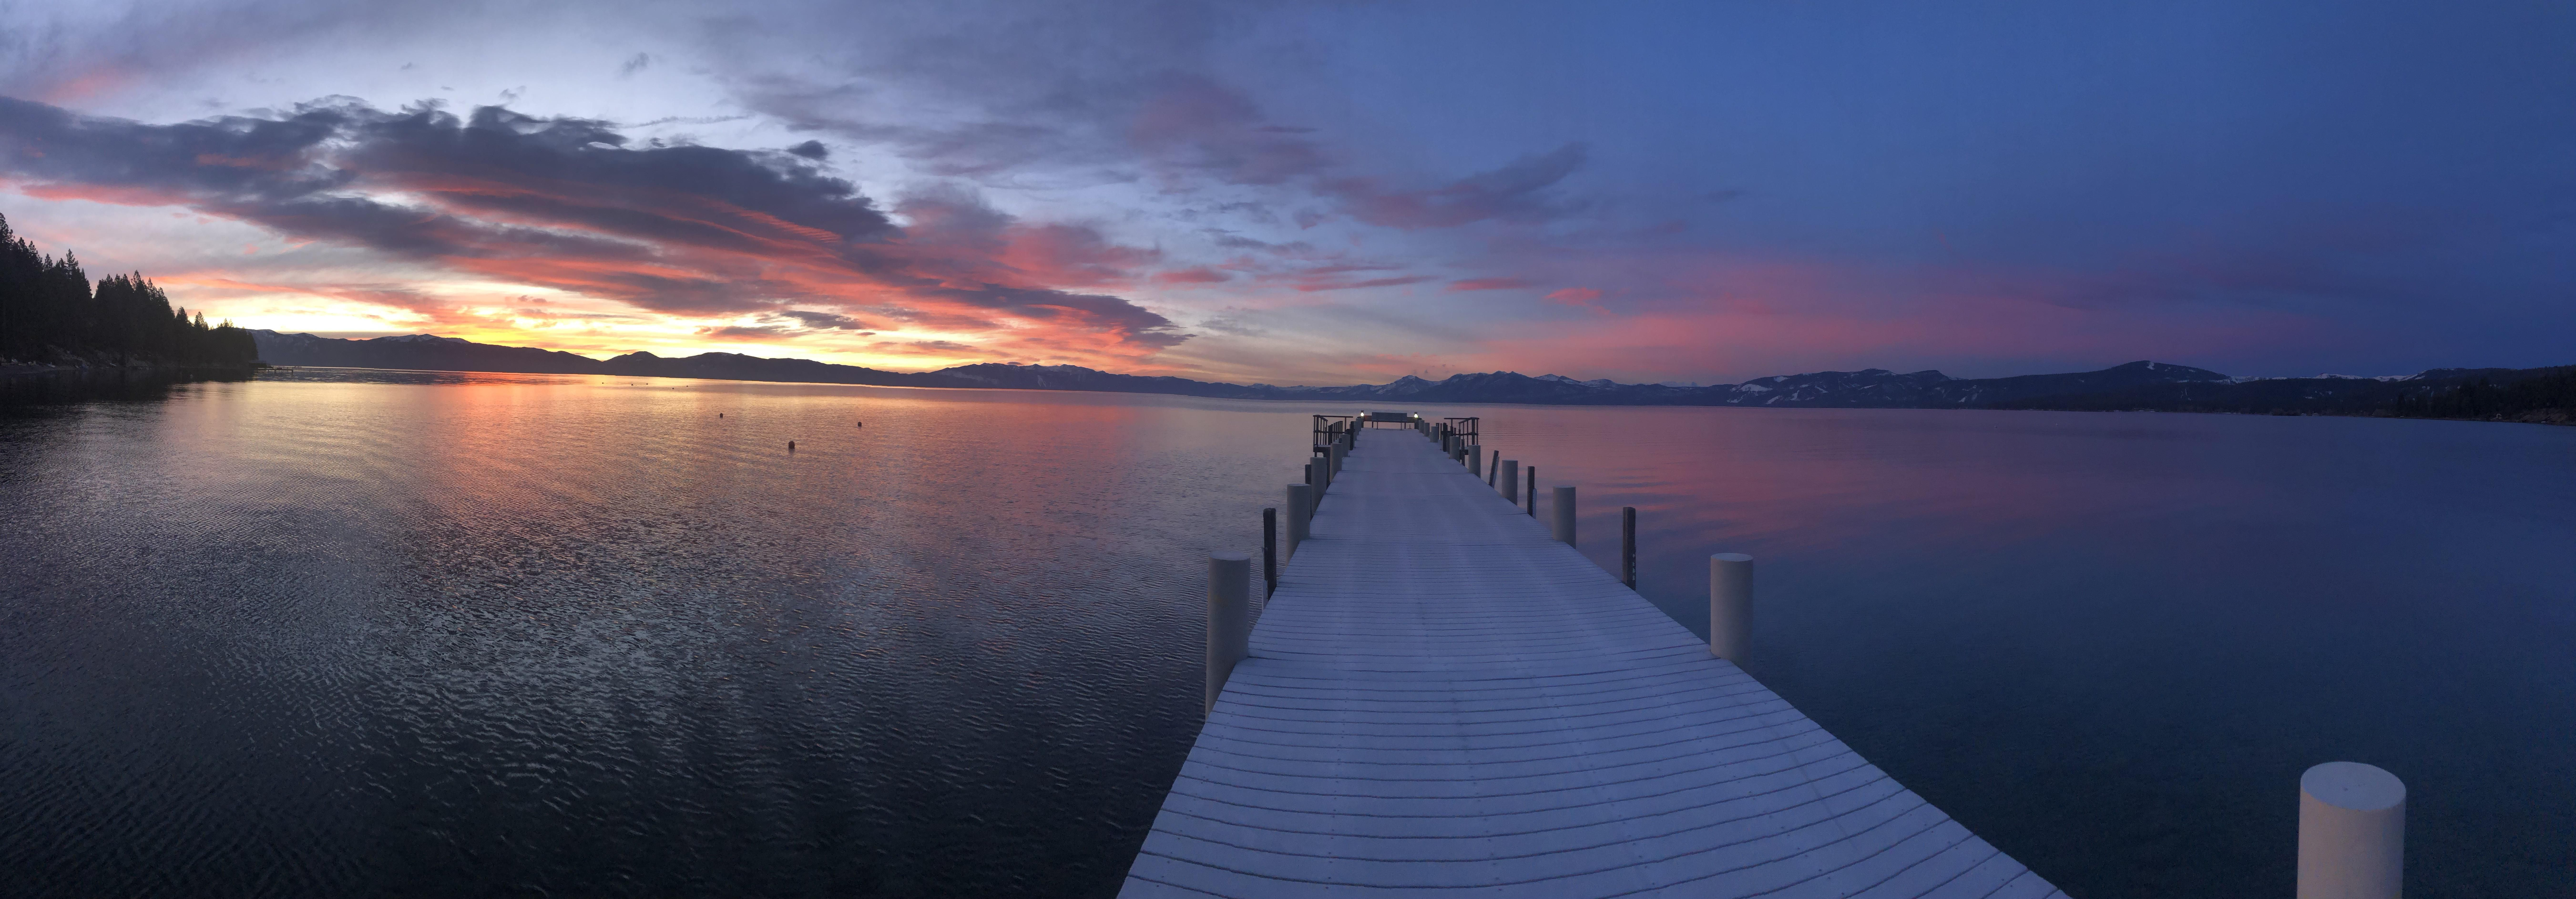 Cracker Of A Sunrise This Weekend Lake Tahoe California Oc 4032x3024 Music Indieartist Chicago In 2020 Lake Tahoe California Lake Tahoe Photography